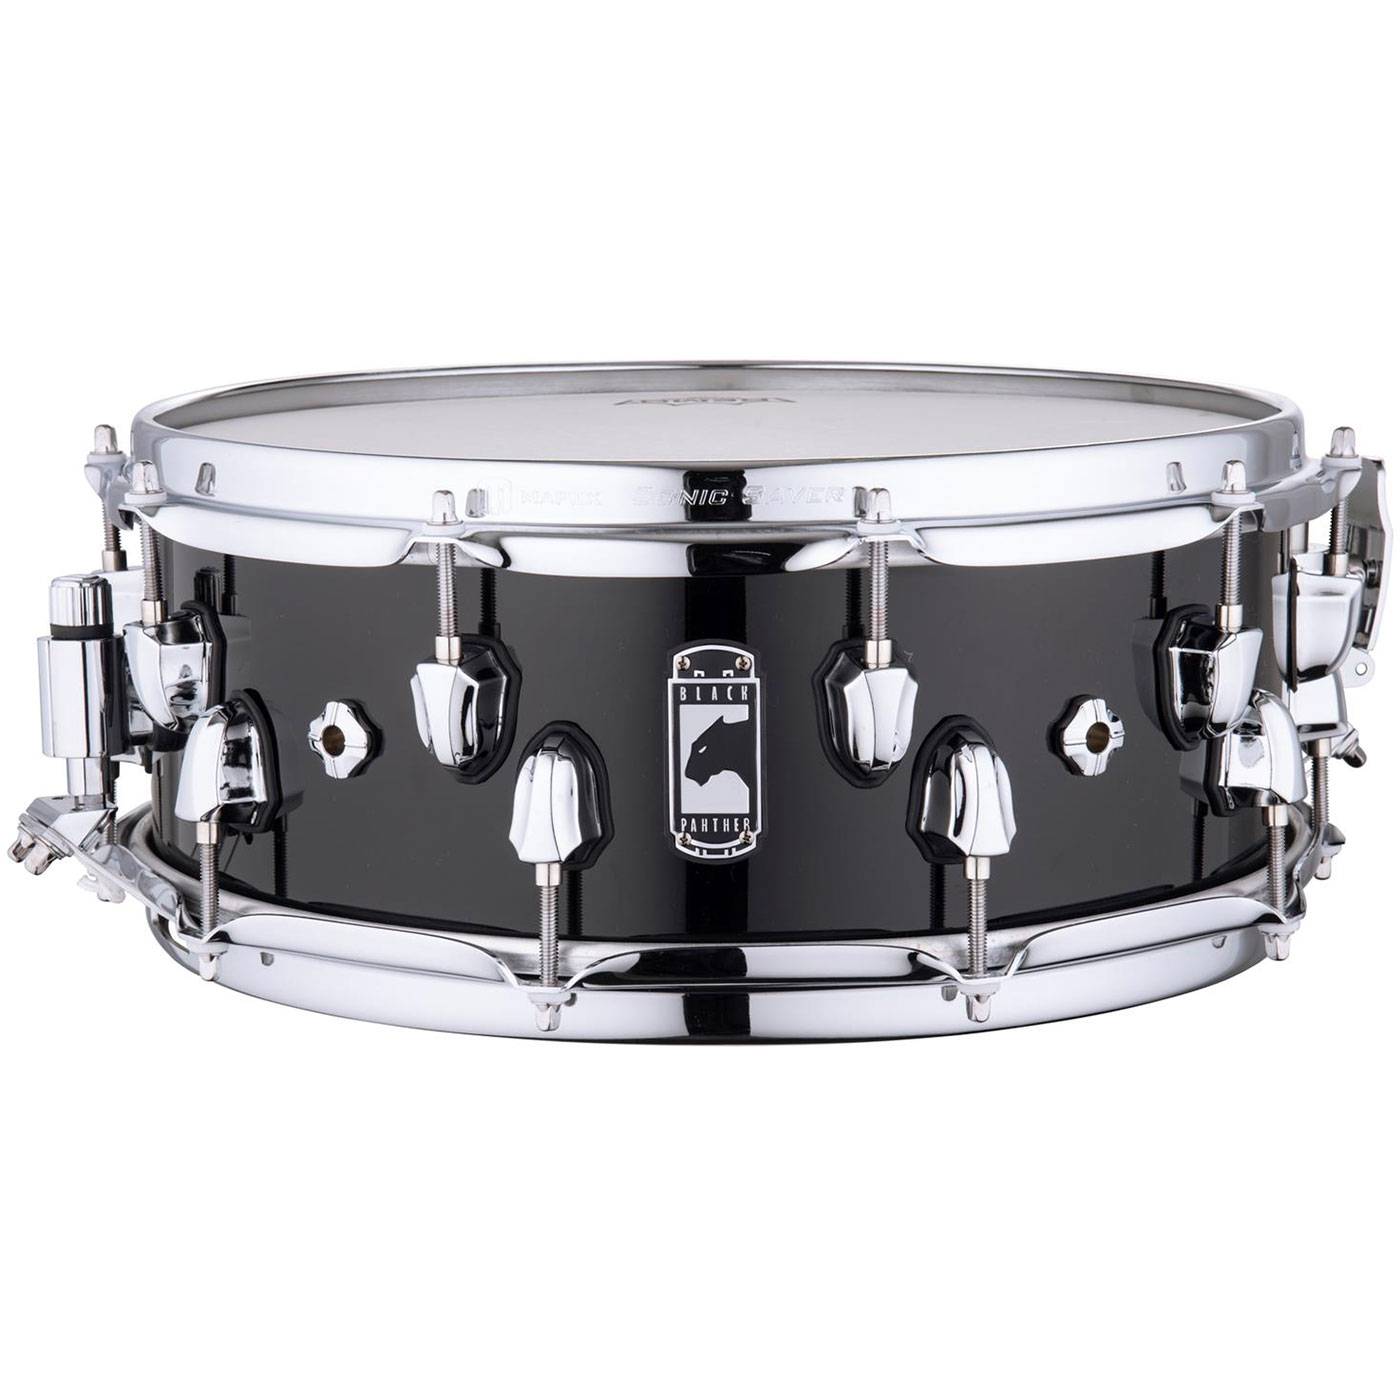 """Mapex 14"""" x 5.5"""" Black Panther """"Nucleus"""" 8-Ply Maple/Walnut/Maple Snare Drum"""